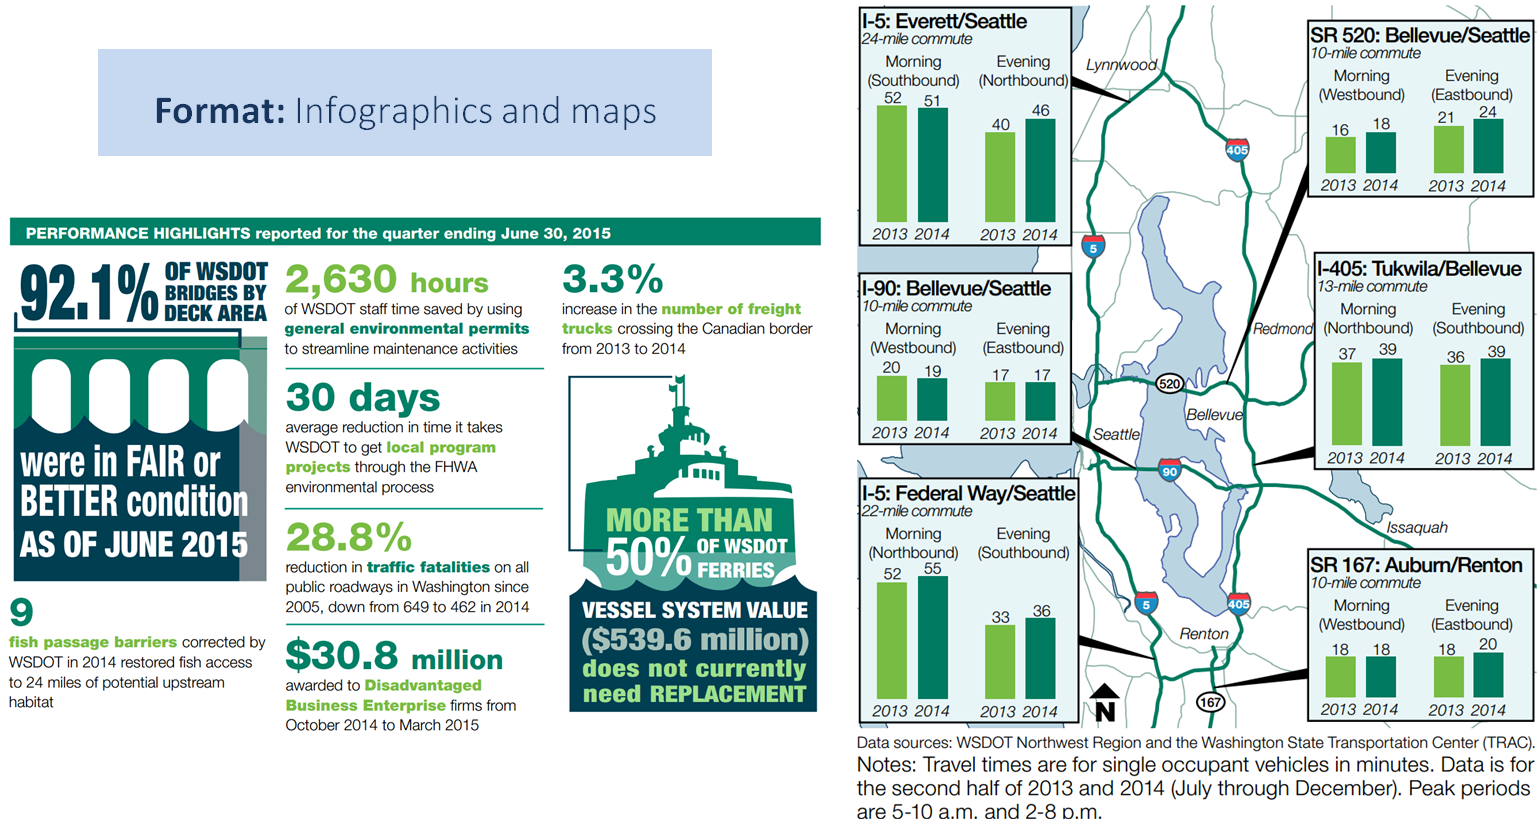 Format: infographics and maps. Examples of infographics and maps in The Gray Notebook.